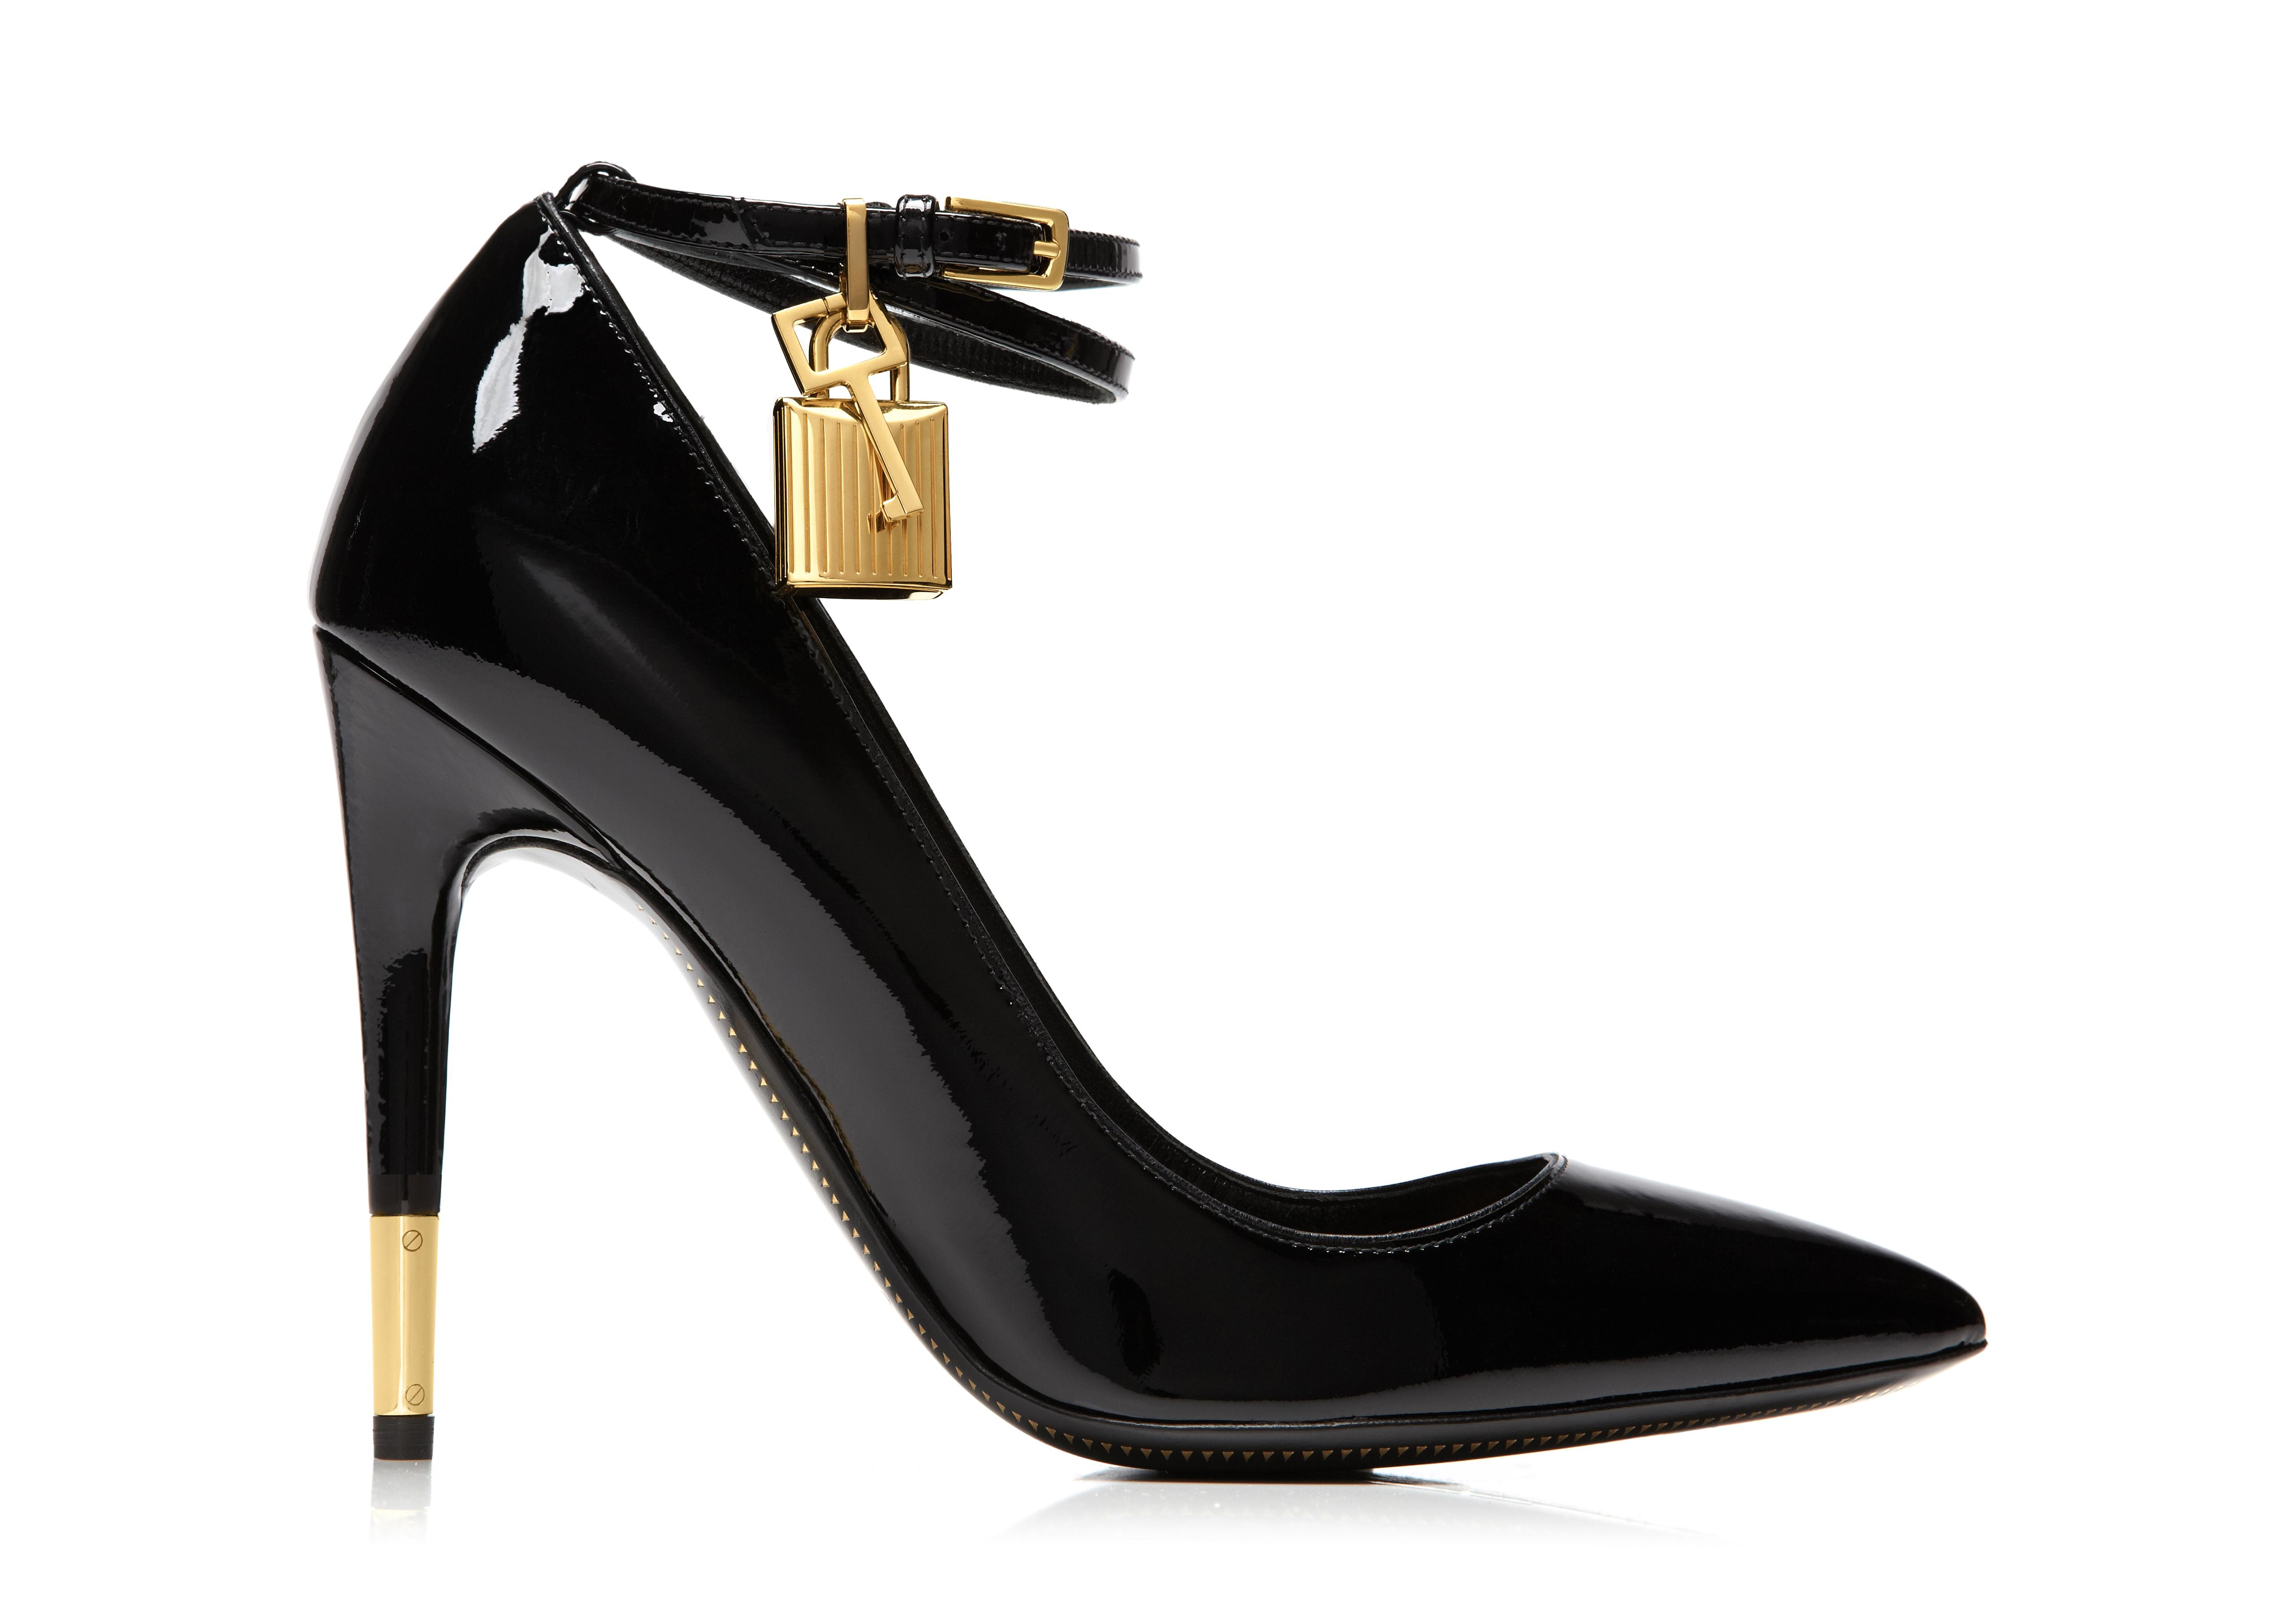 2 Stores In Stock Tom Ford Leather Pump With Ankle Strap And Lock Klack Modesens